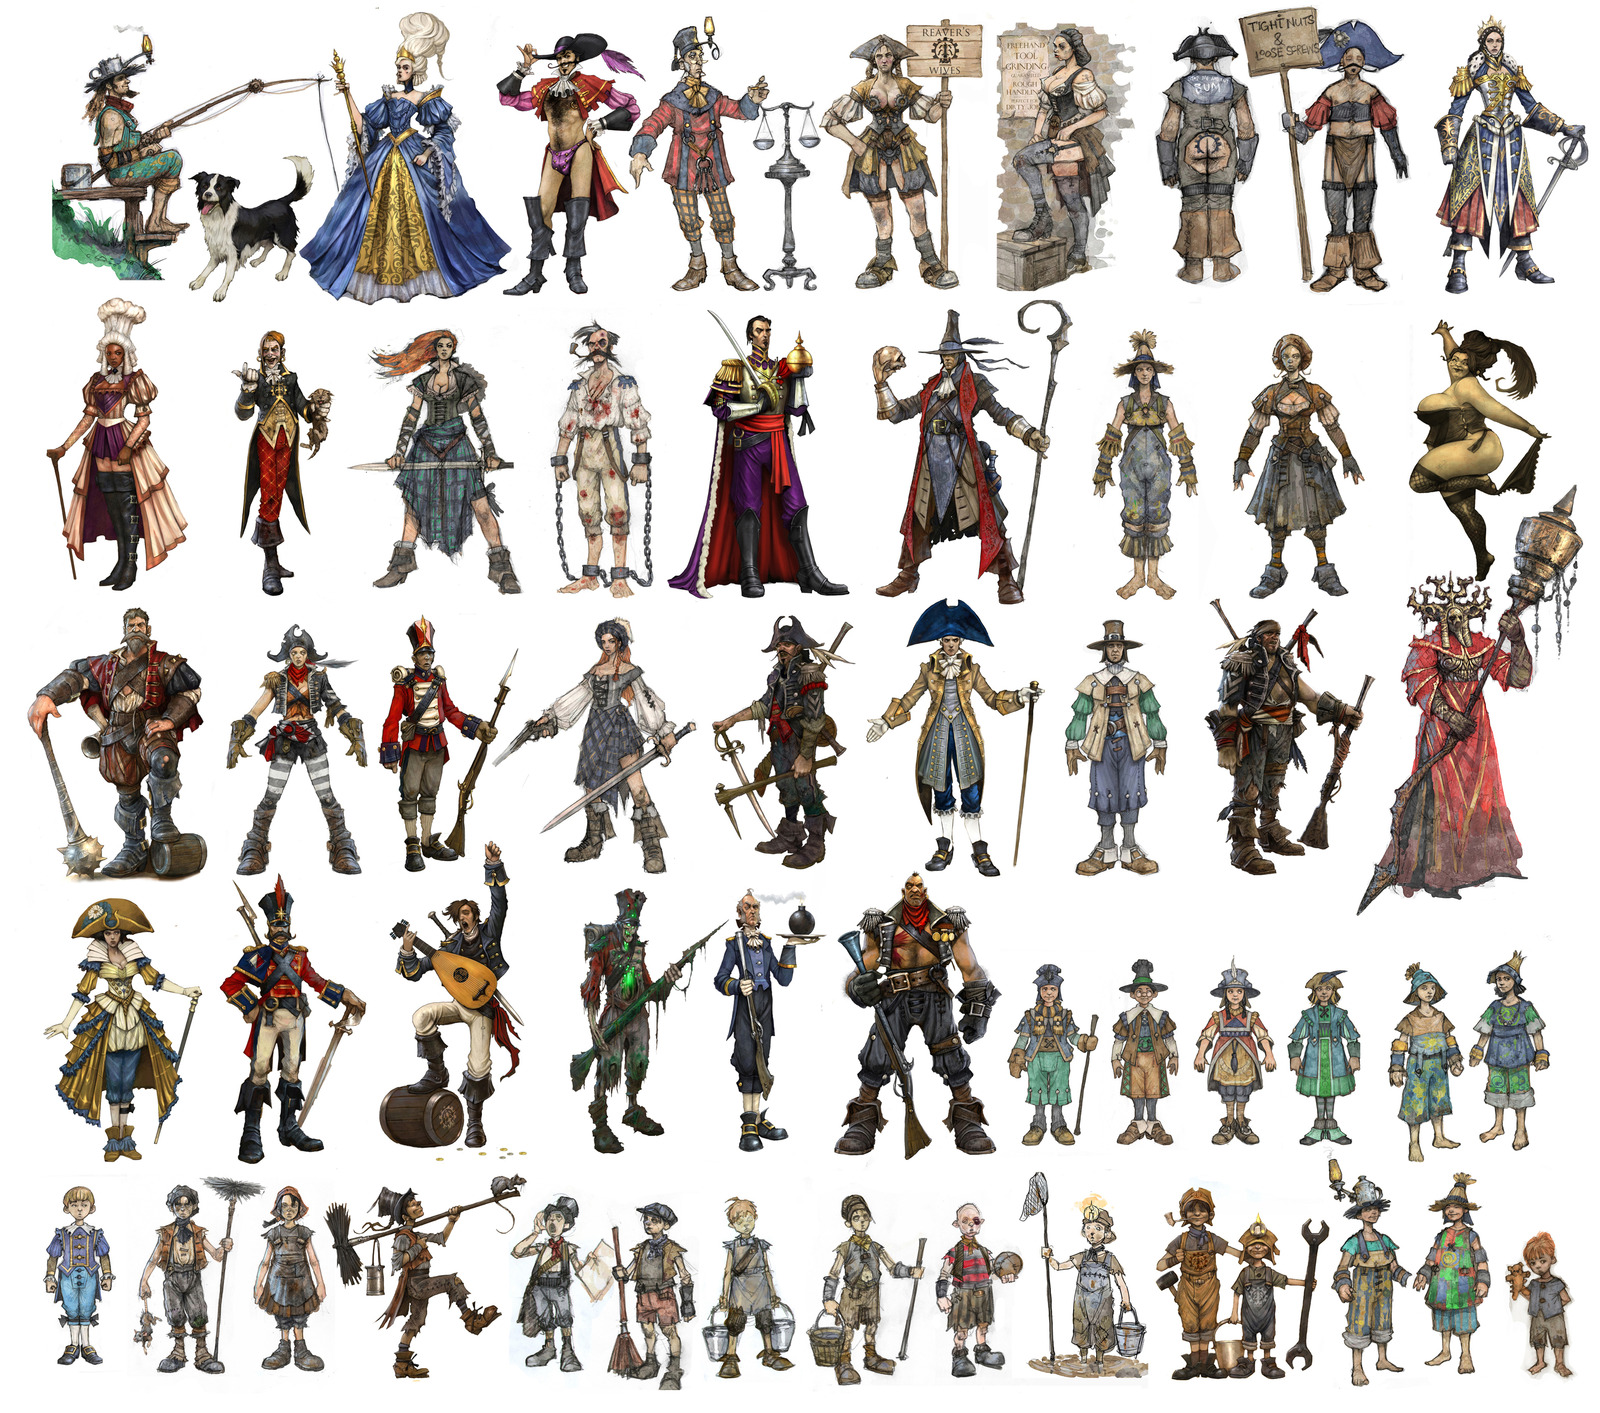 Image - Fable III Character Concepts 2.jpg | The Fable ...